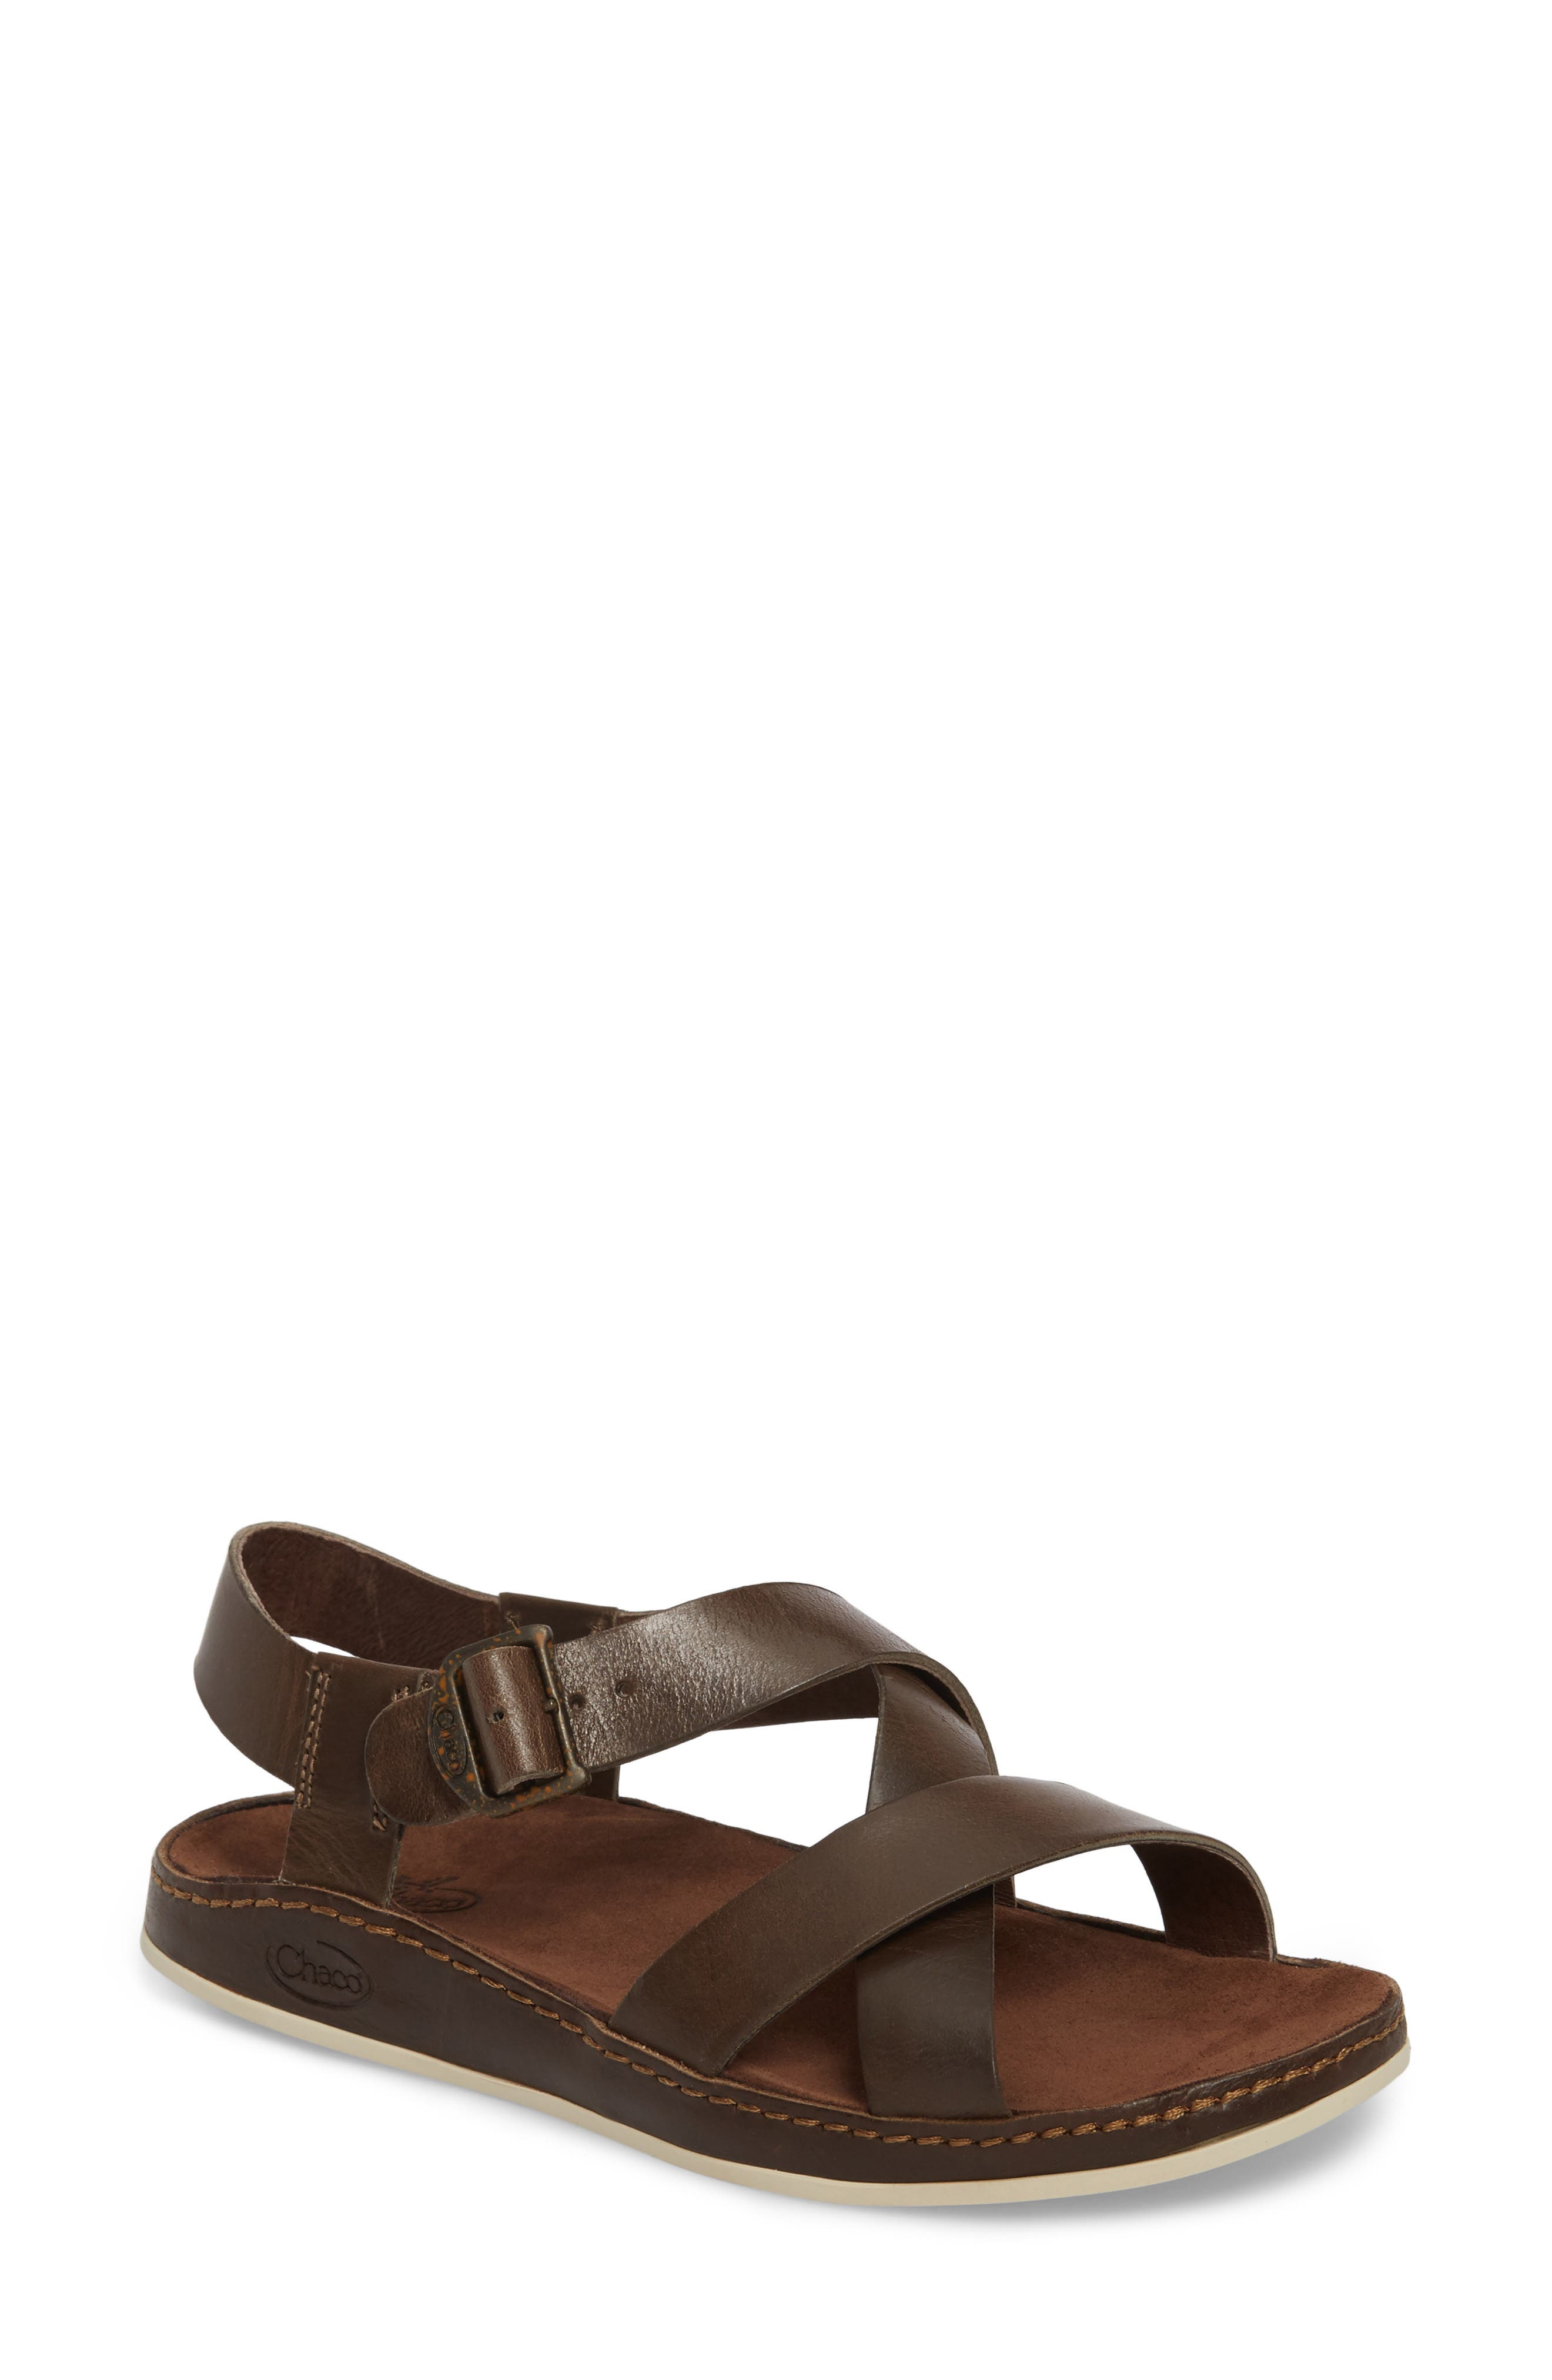 Strappy Sandal,                             Main thumbnail 1, color,                             OTTER LEATHER